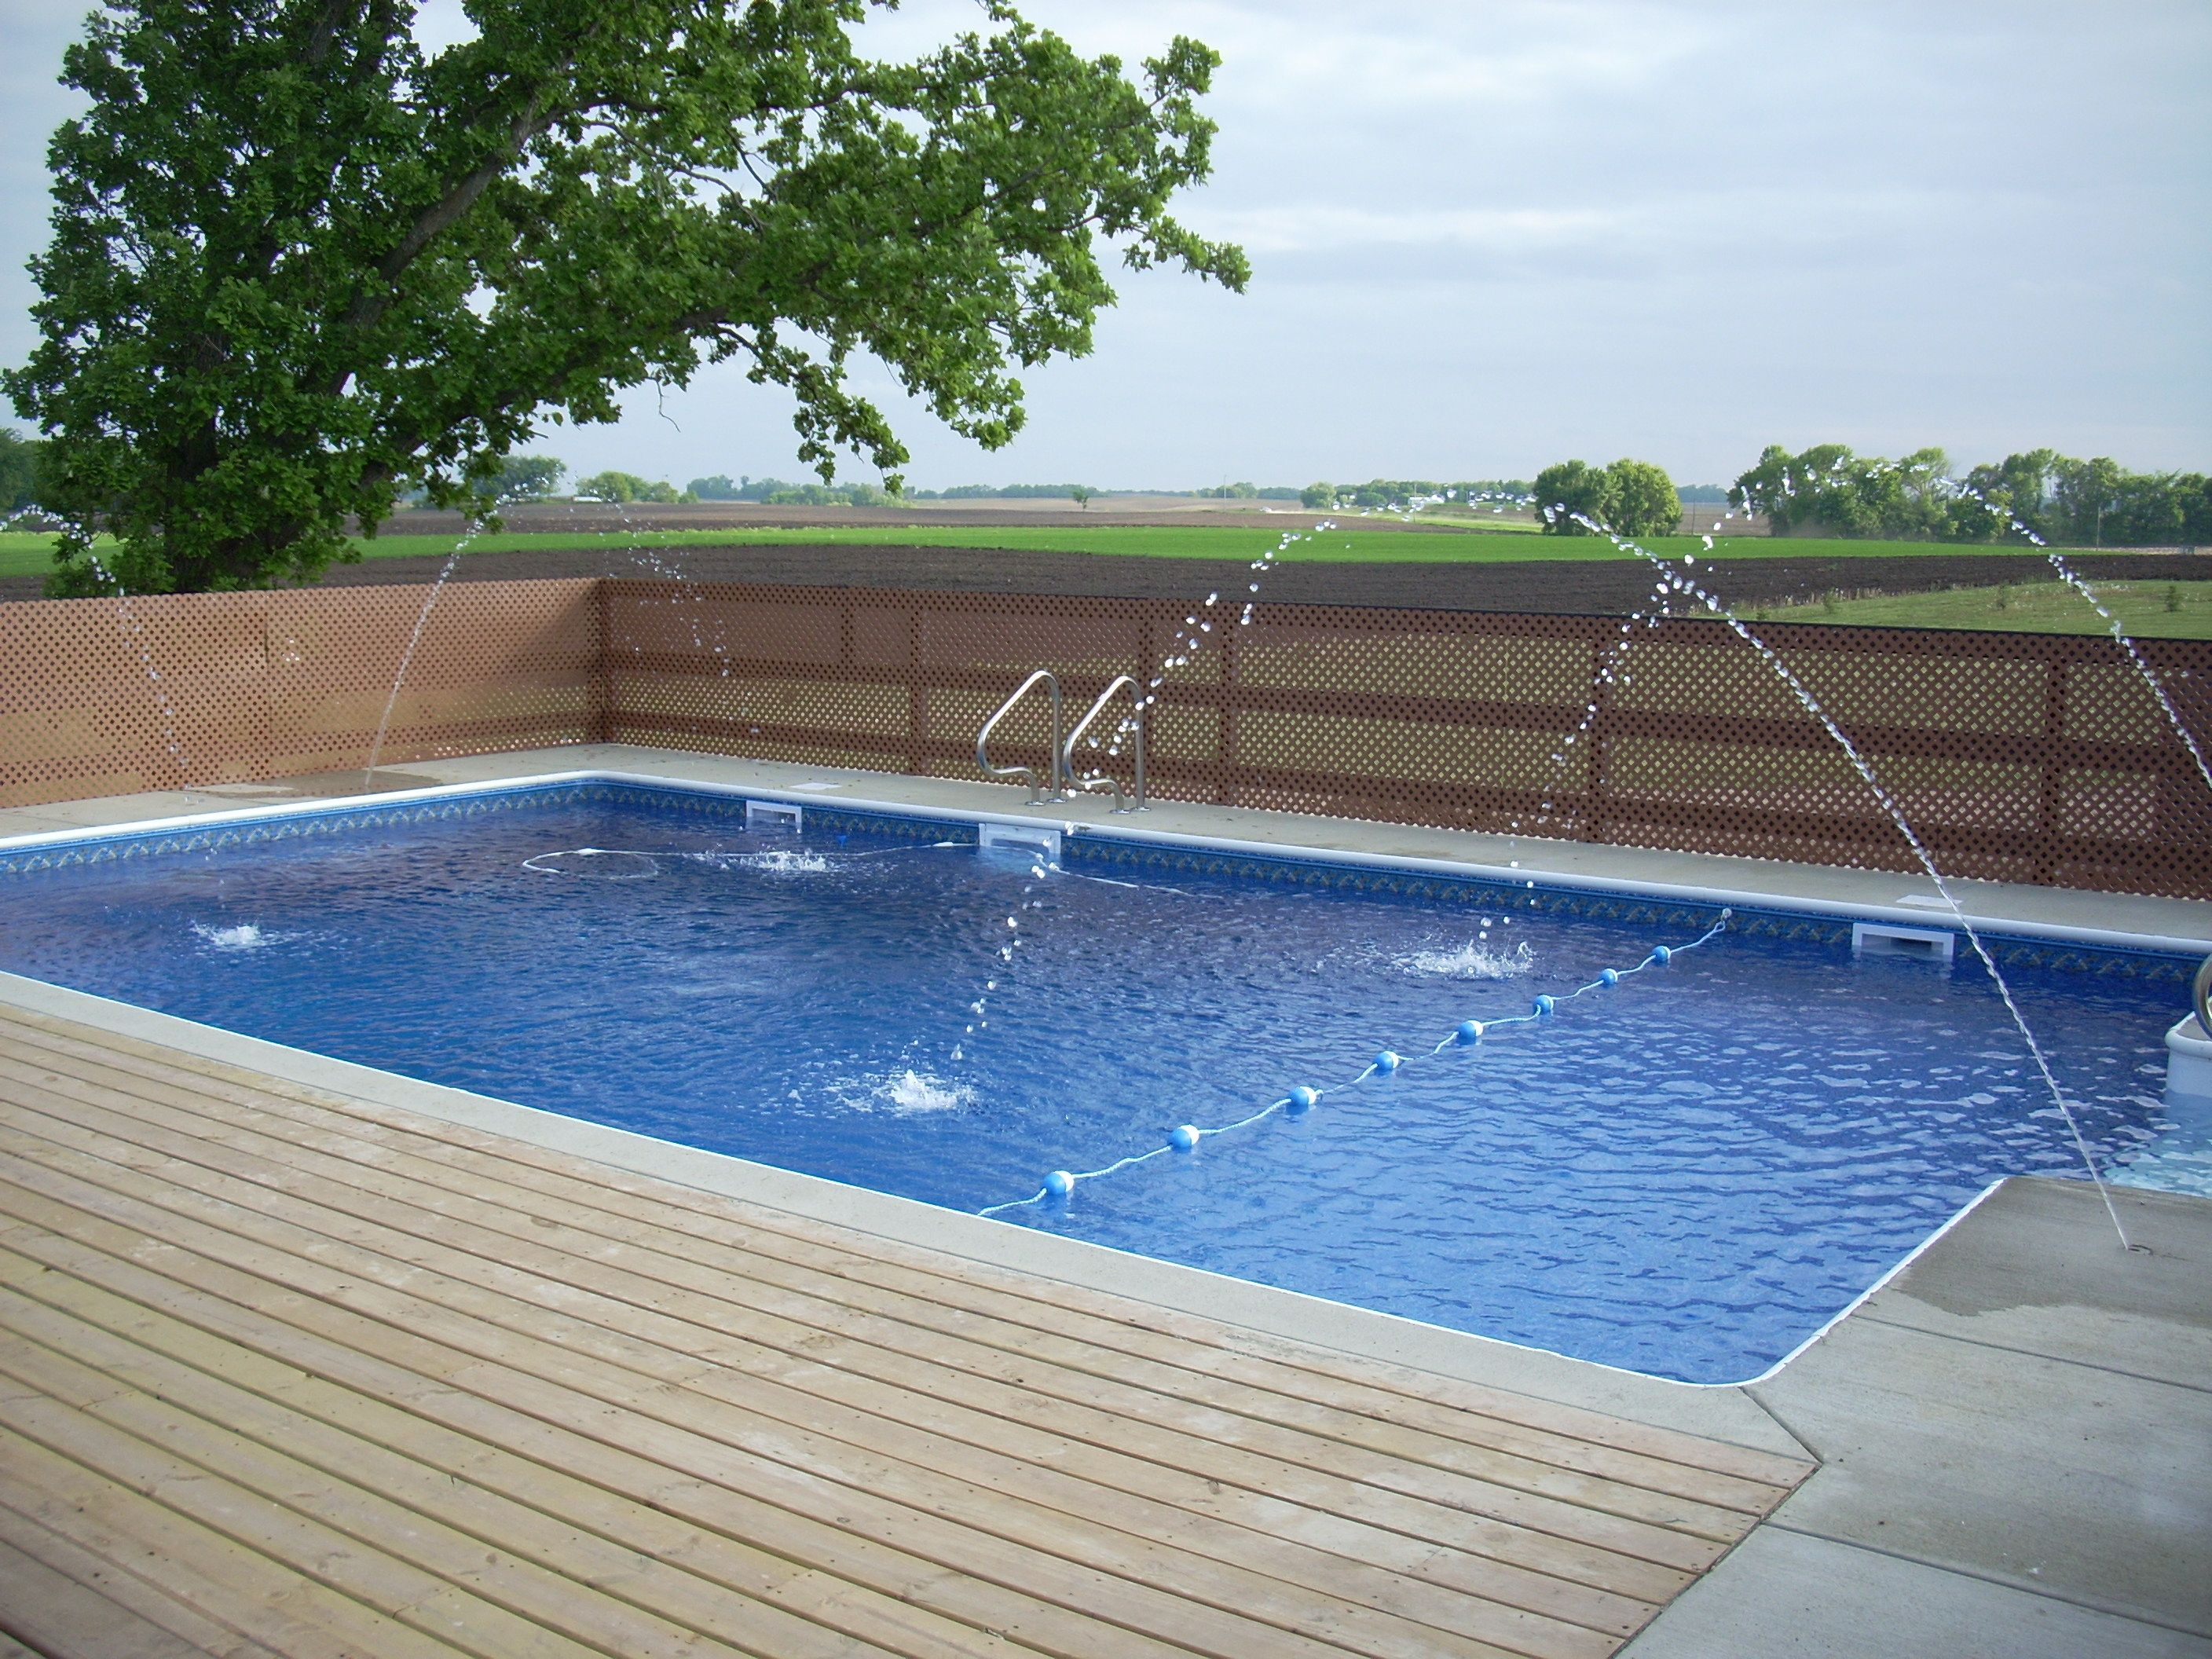 Inground swimming pool installed by tc pools when im older i want inground swimming pool installed by tc pools when im older i want to have solutioingenieria Images